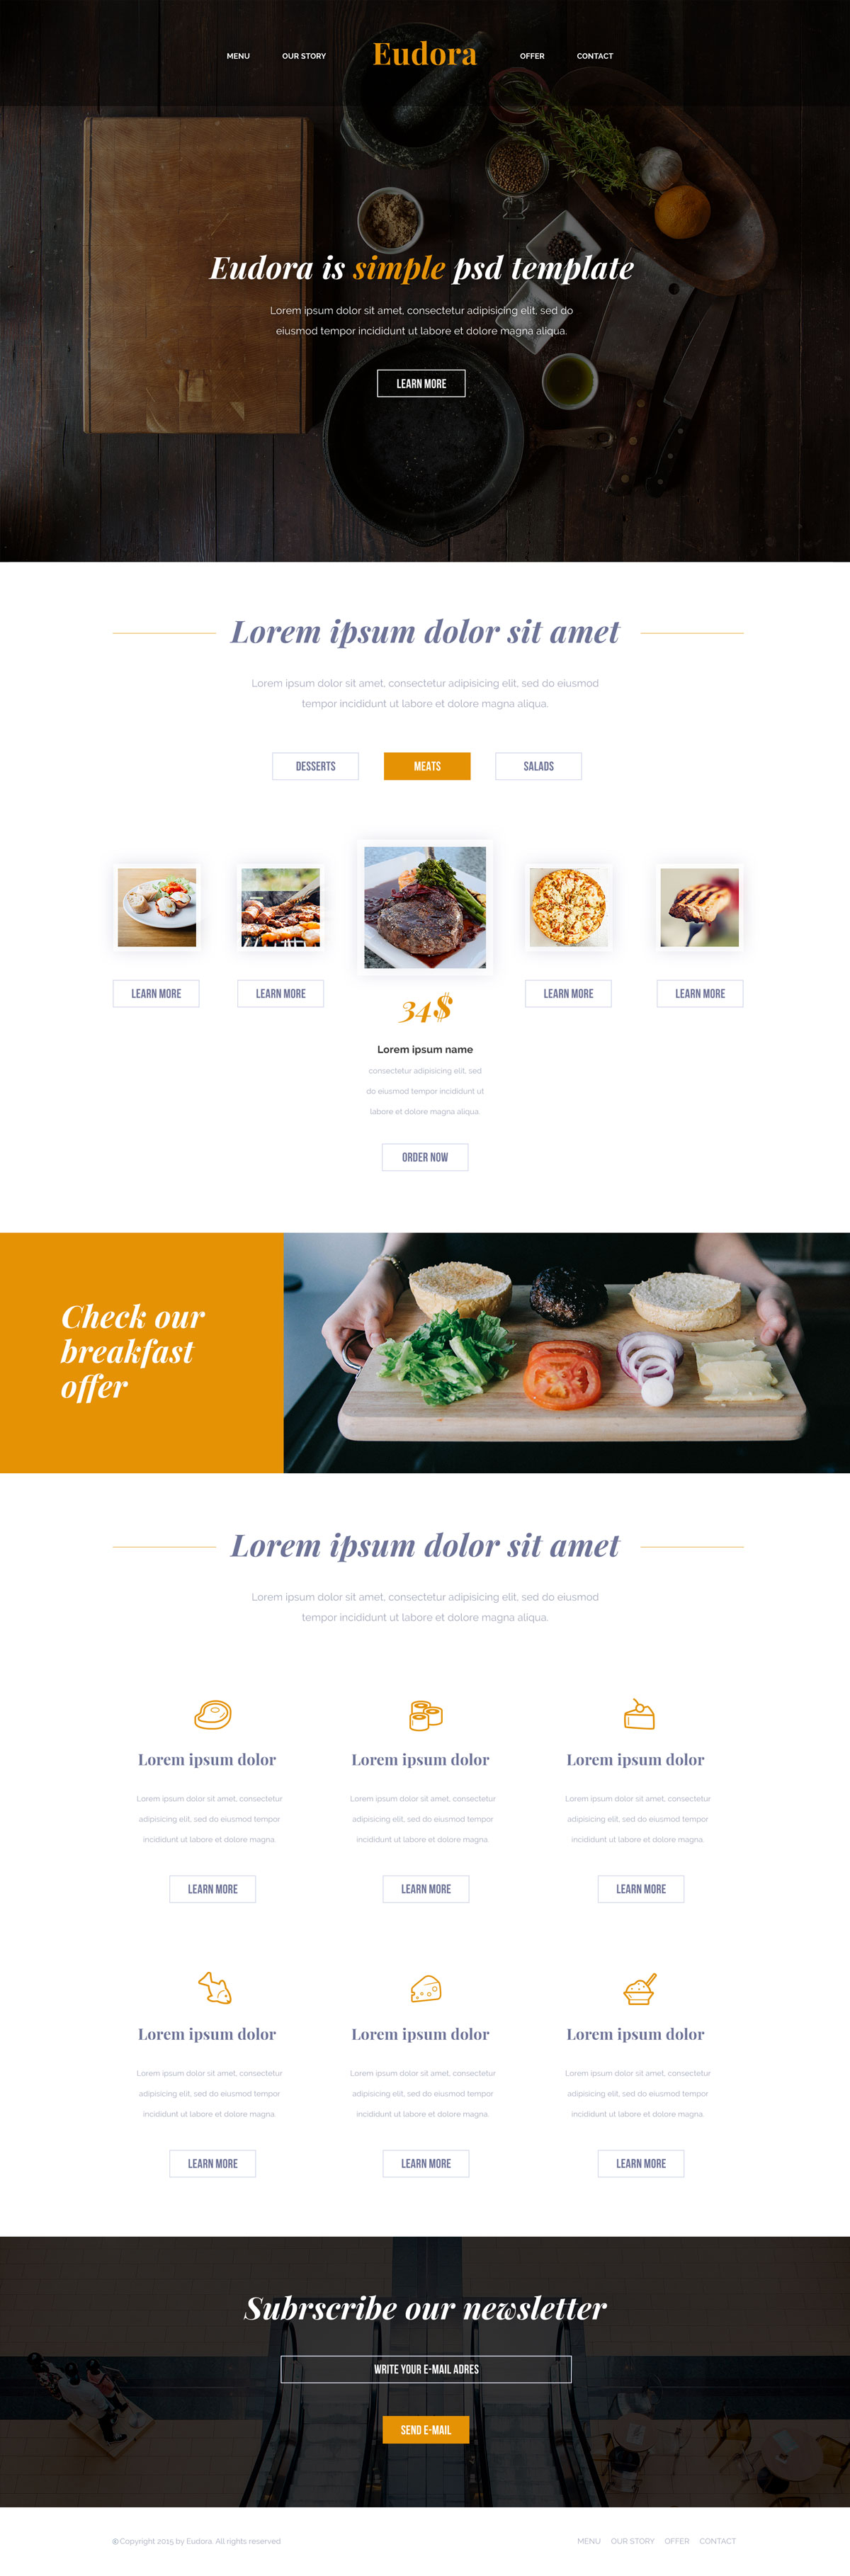 Eudora HTML Template for Restaurant & Food Websites | Free HTML5 ...